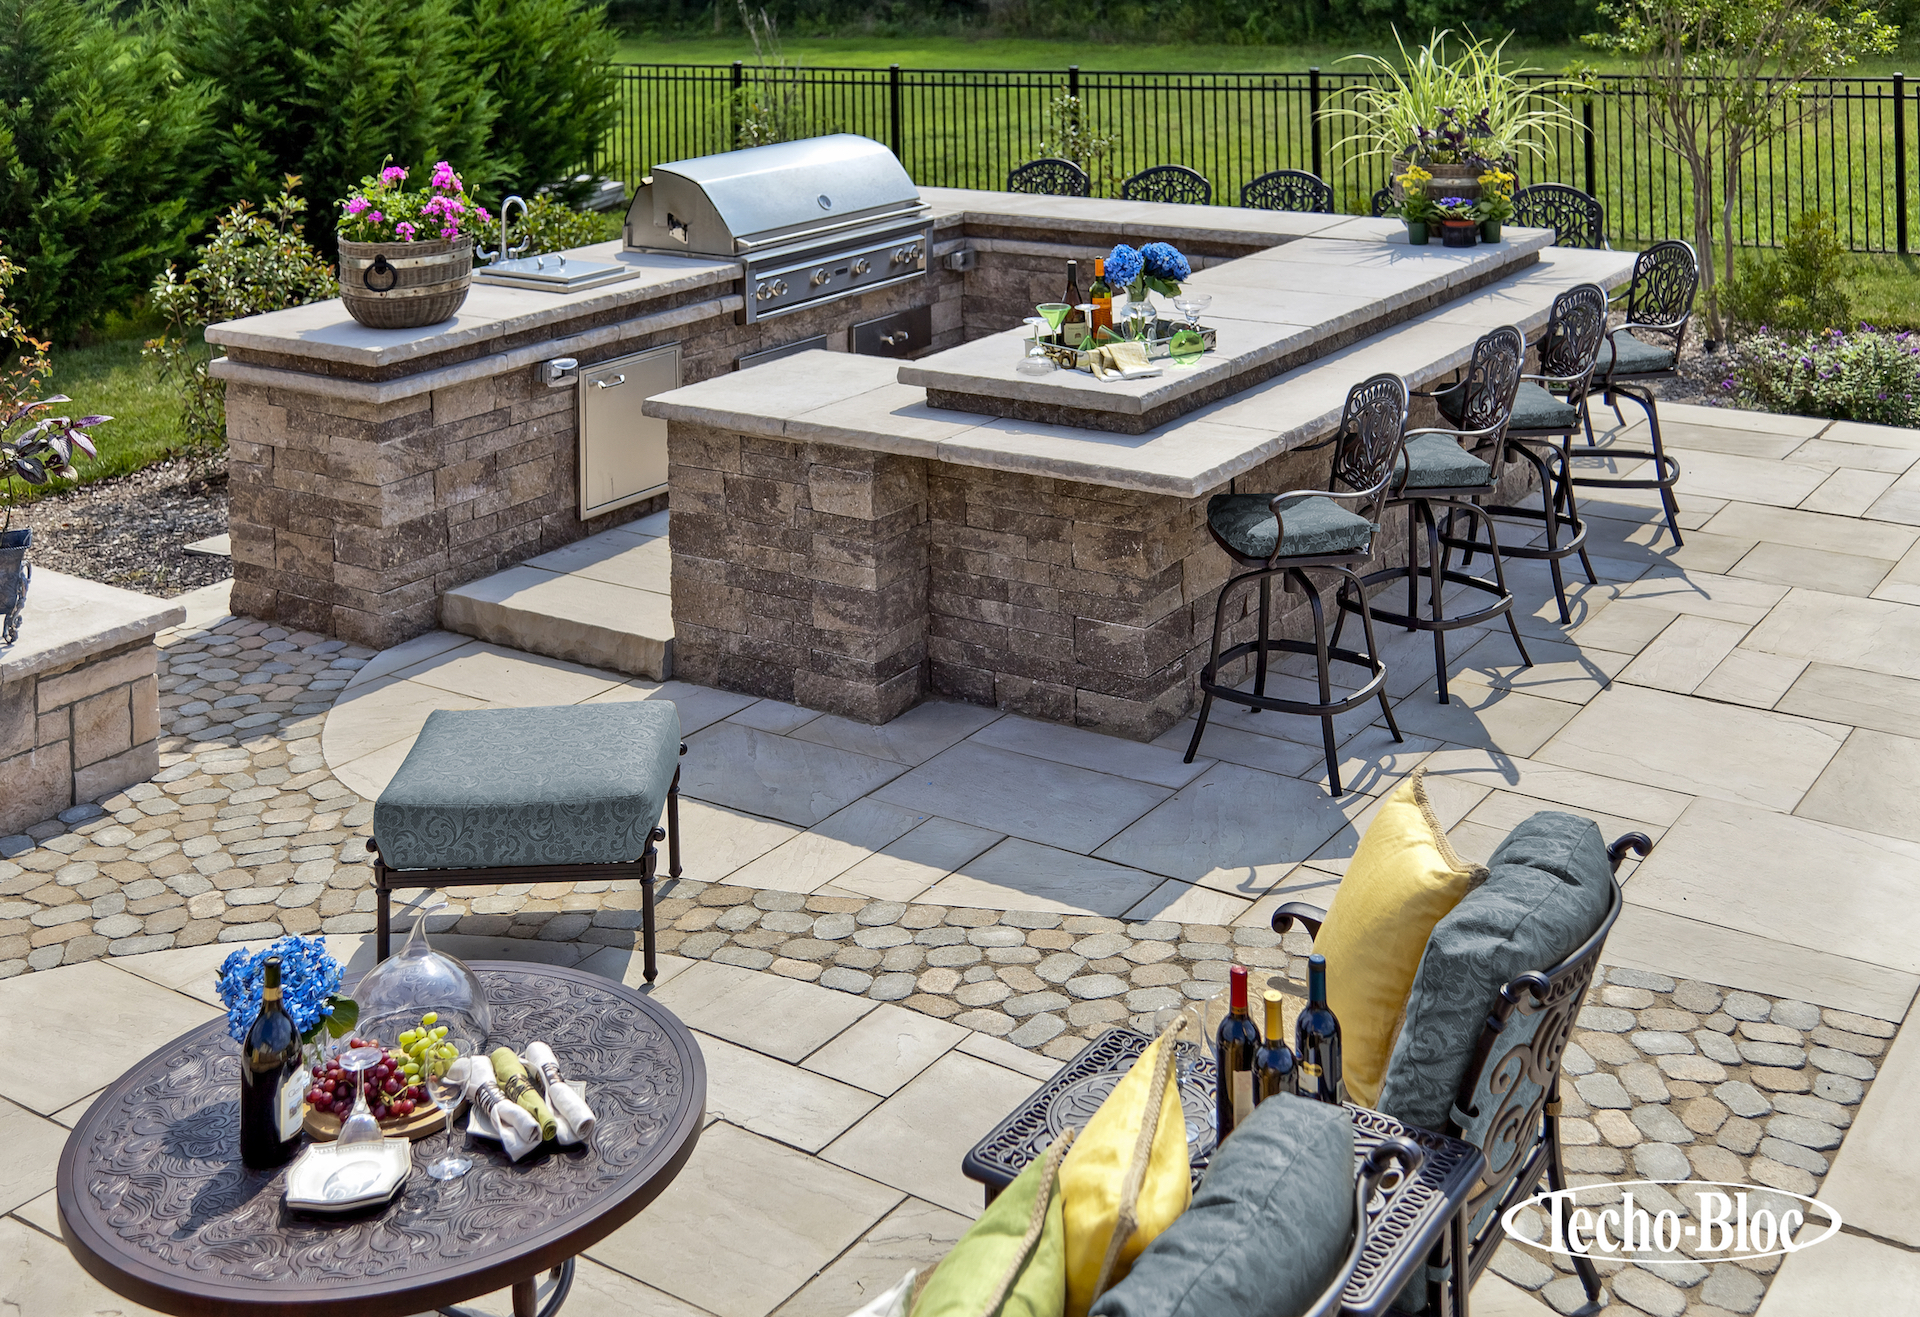 Techo bloc northern nurseries for Techo bloc